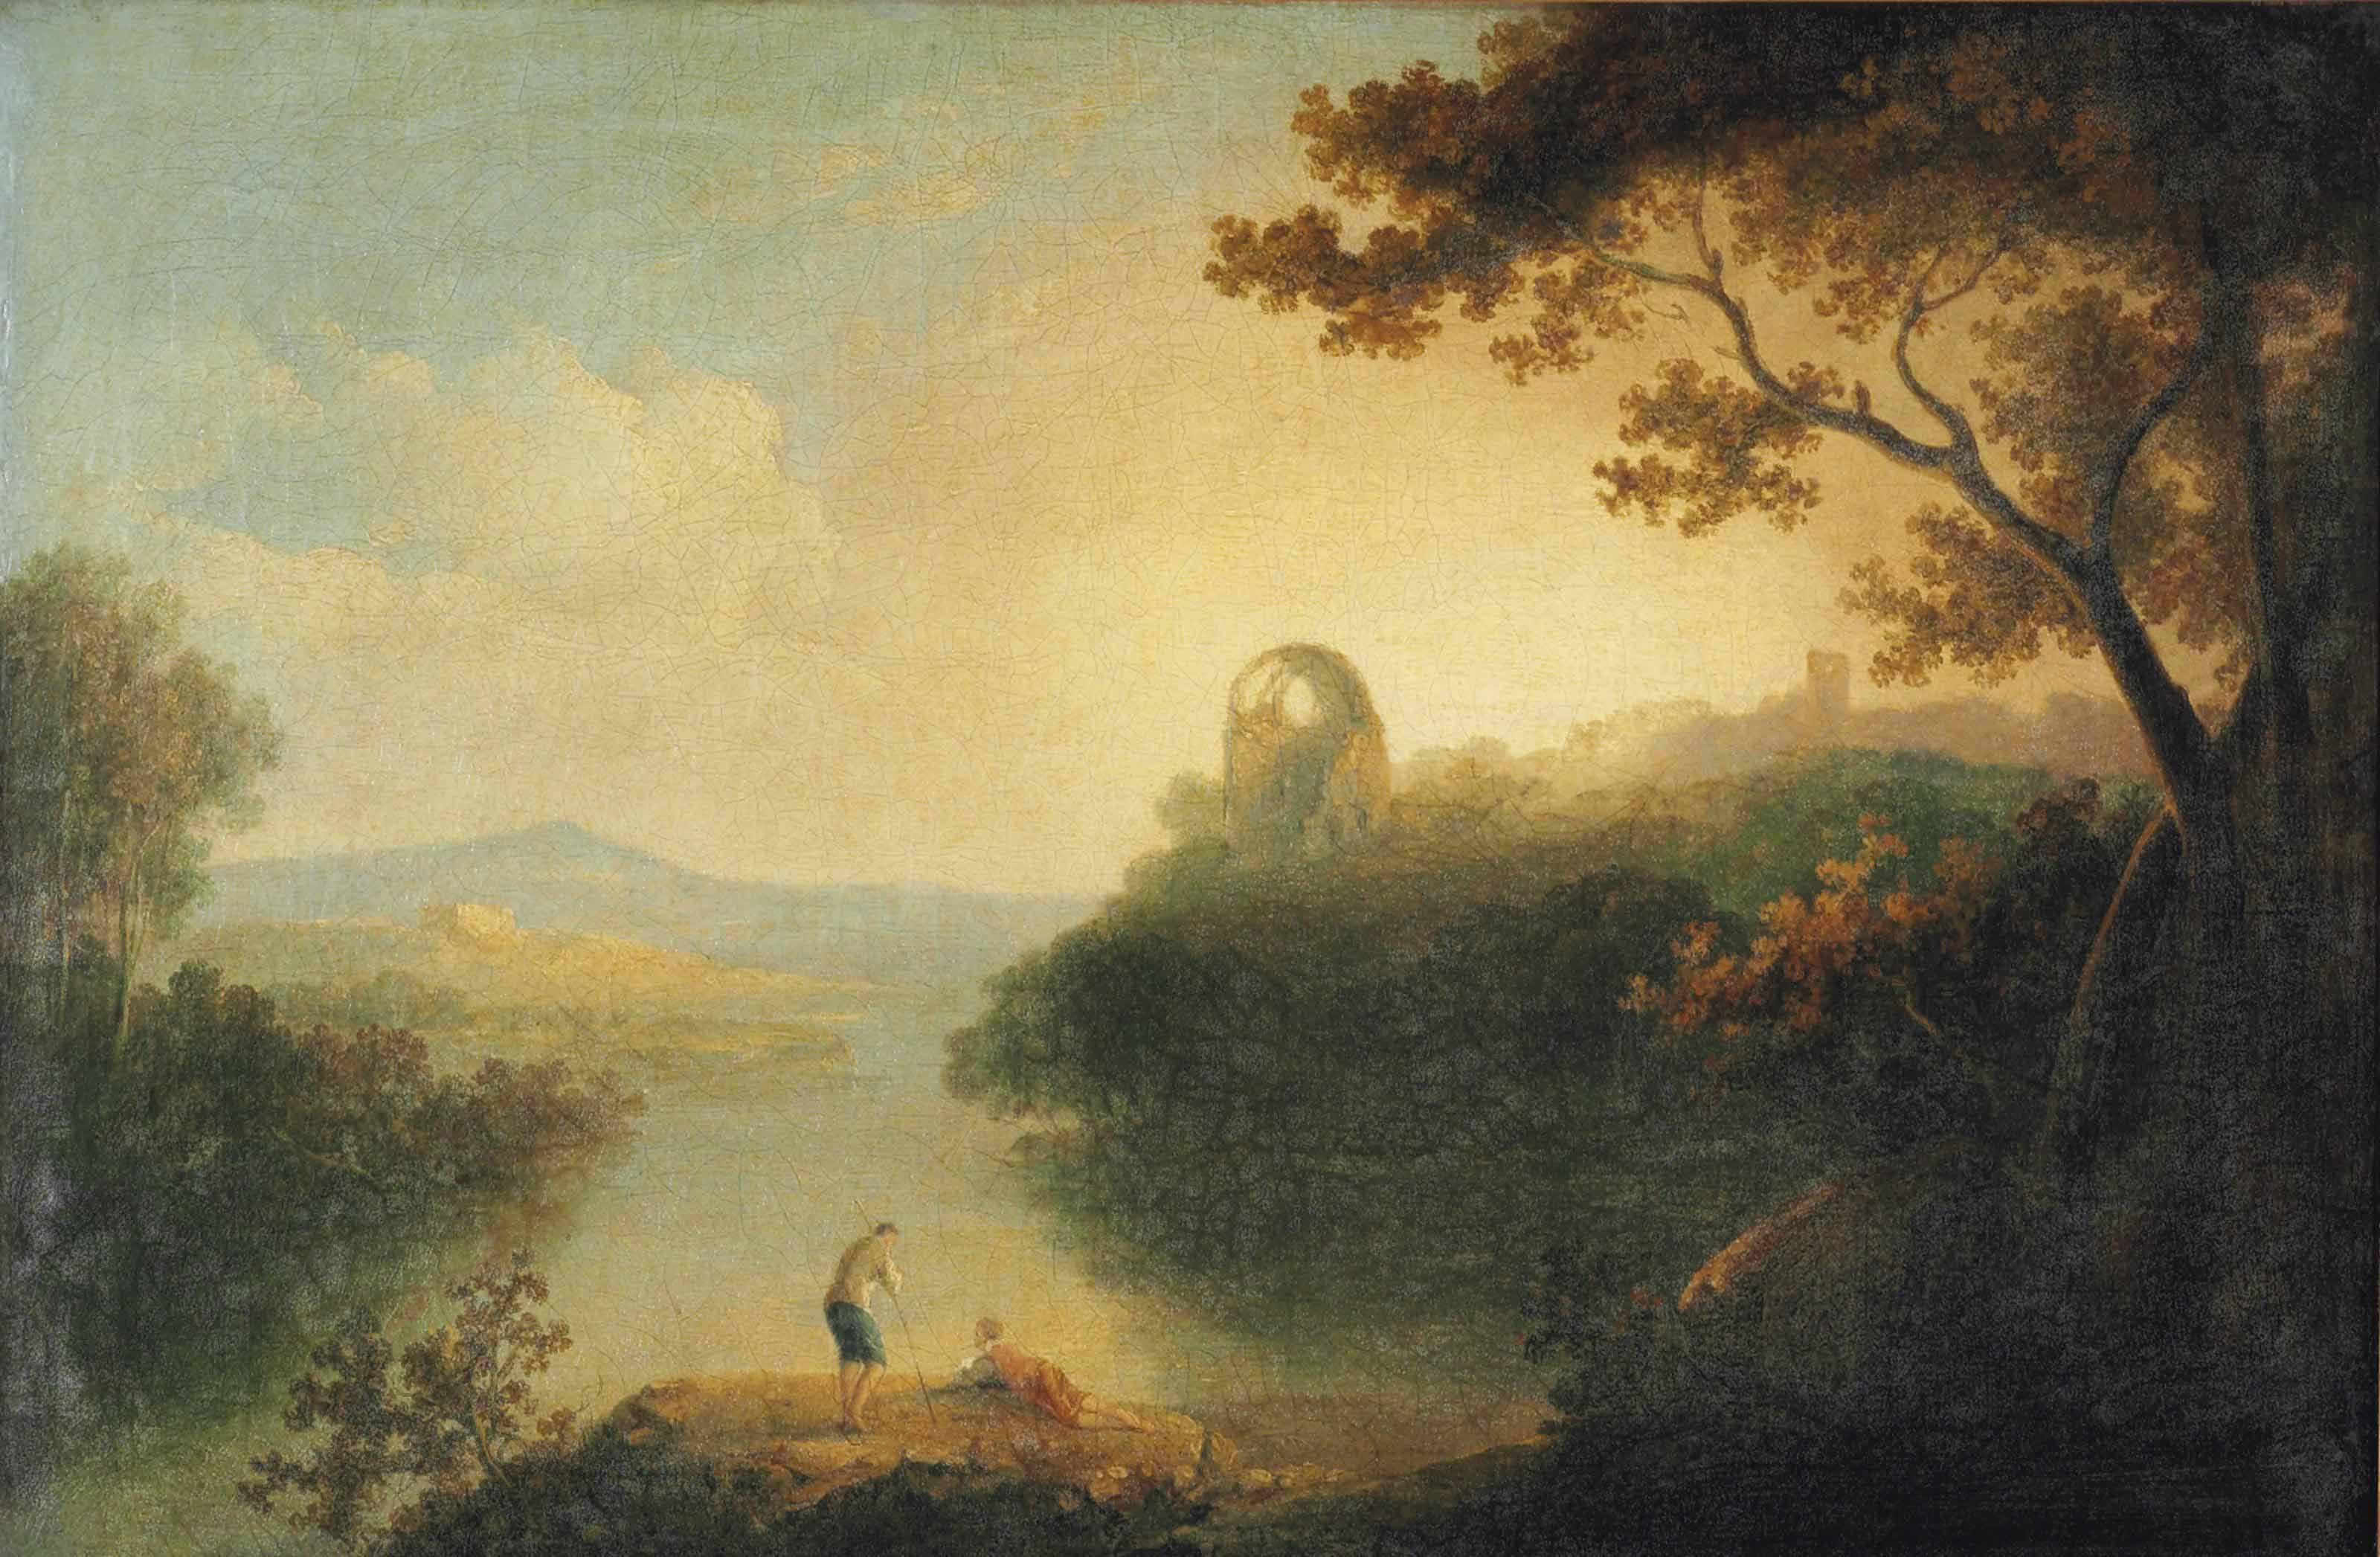 An Italianate river landscape with figures conversing on a bank, ruins beyond